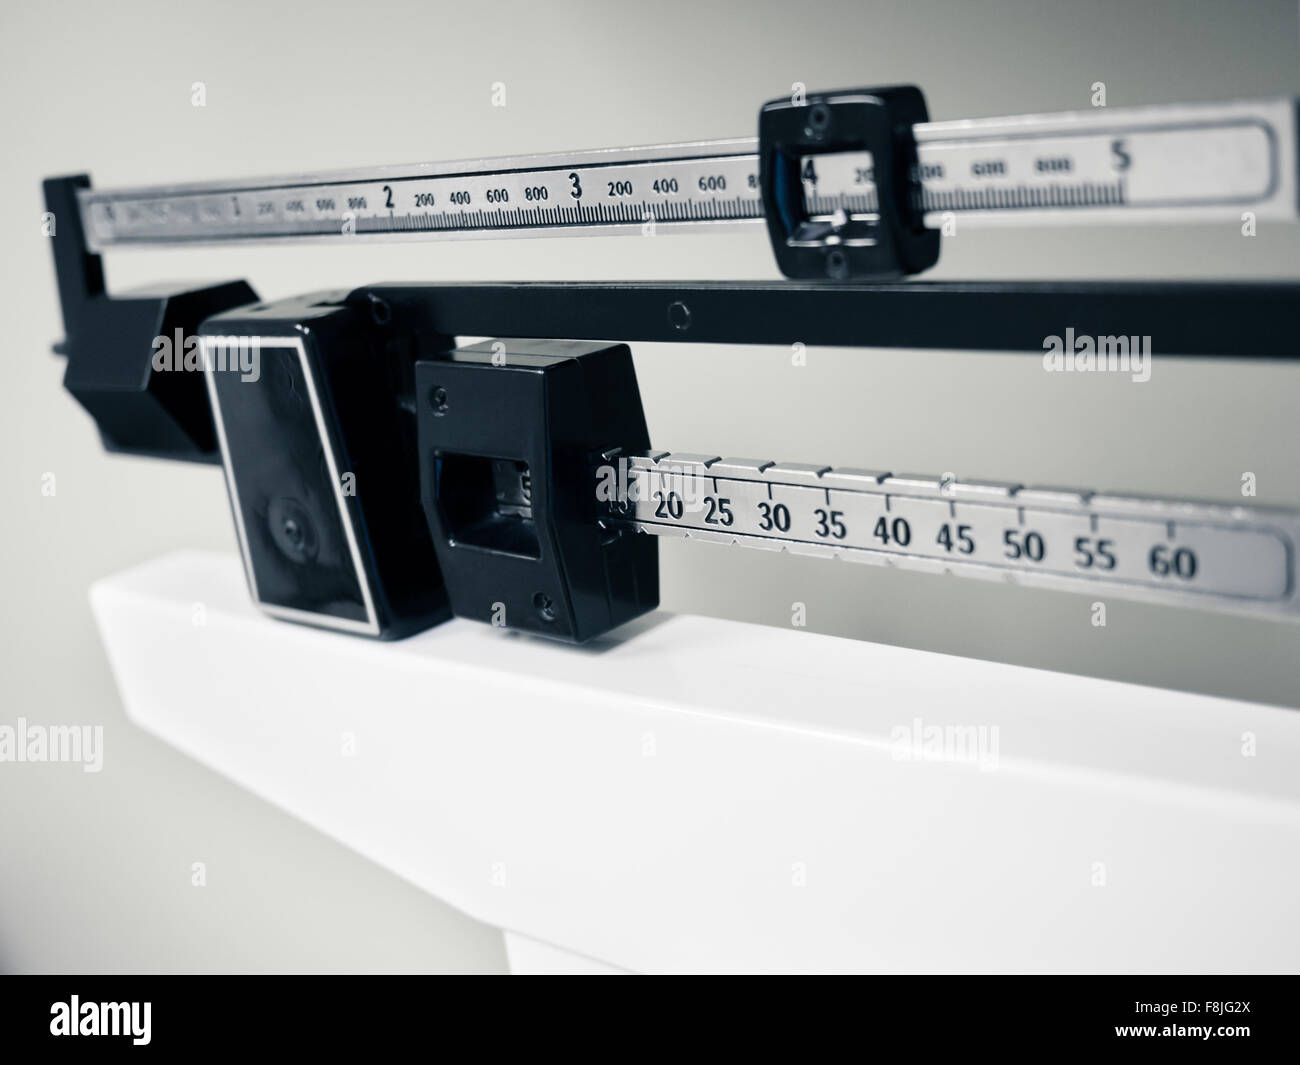 Doctor's Office Scale - Medical professional physician sliding balance weight scale at a doctor's office - Stock Image